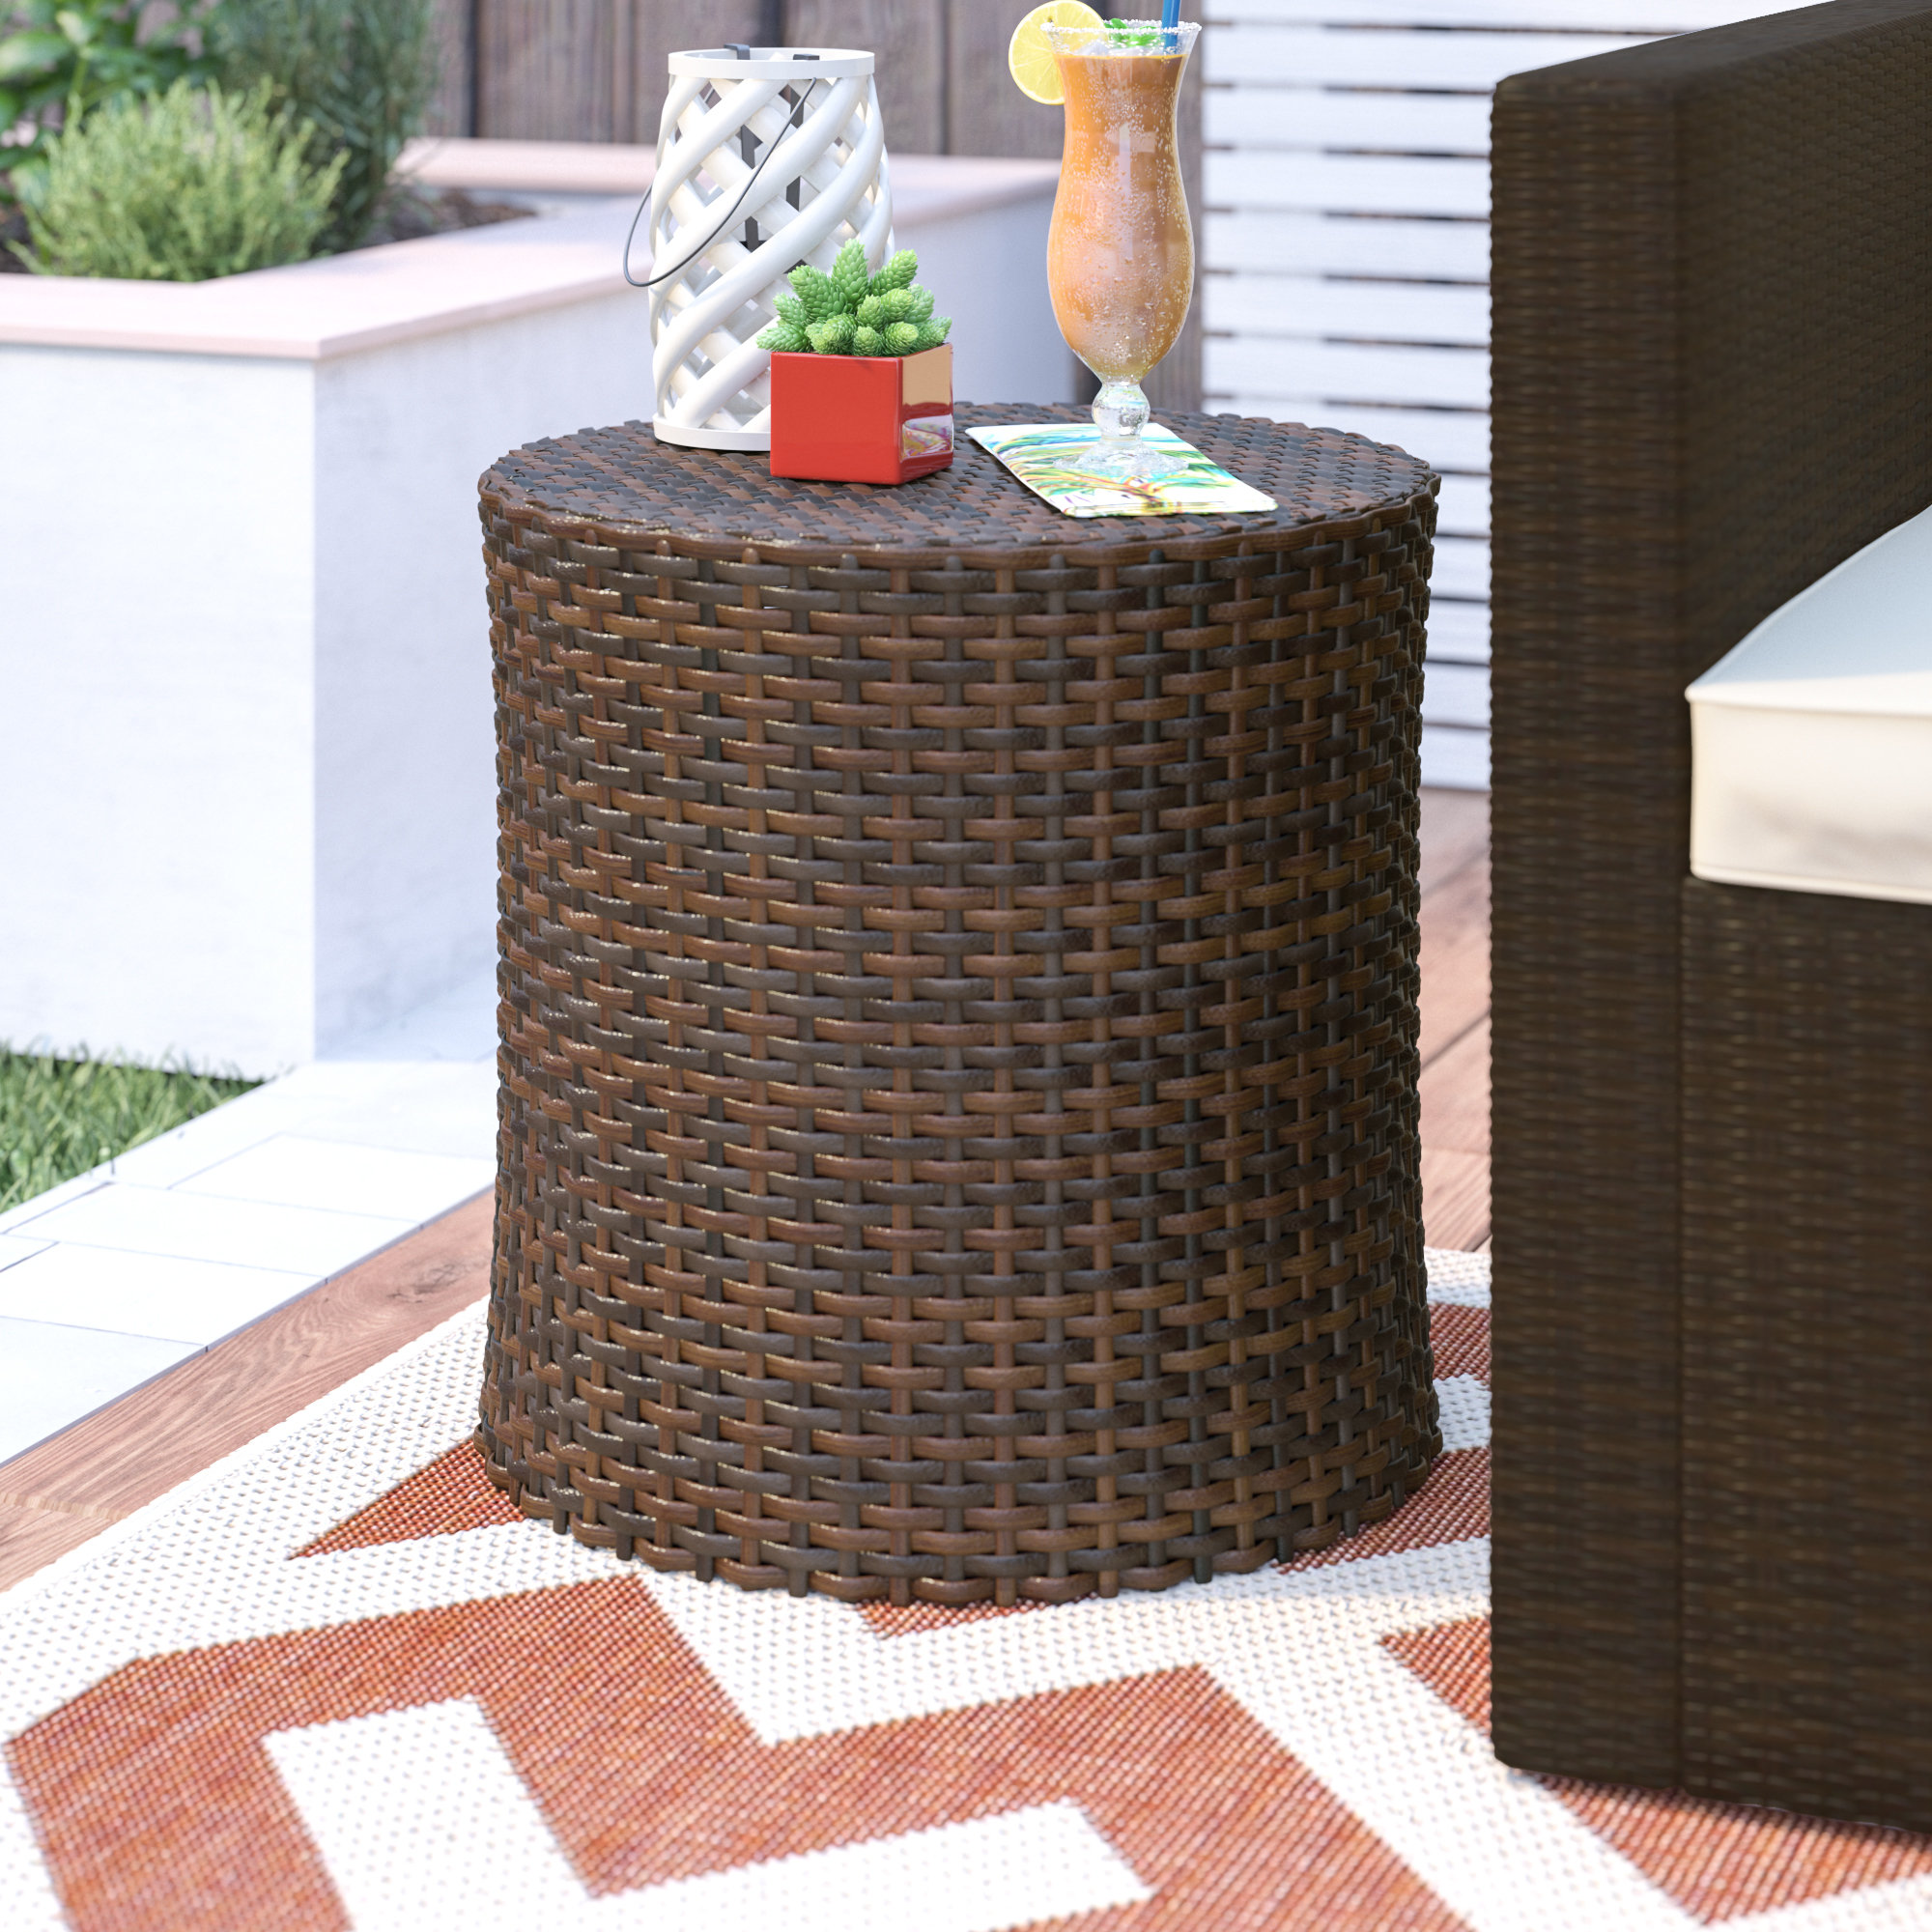 mercury glass side table mazzella barrel wicker outdoor with umbrella hole quickview concrete dining target garden stool red barn style coffee blue linens ballards rugs living